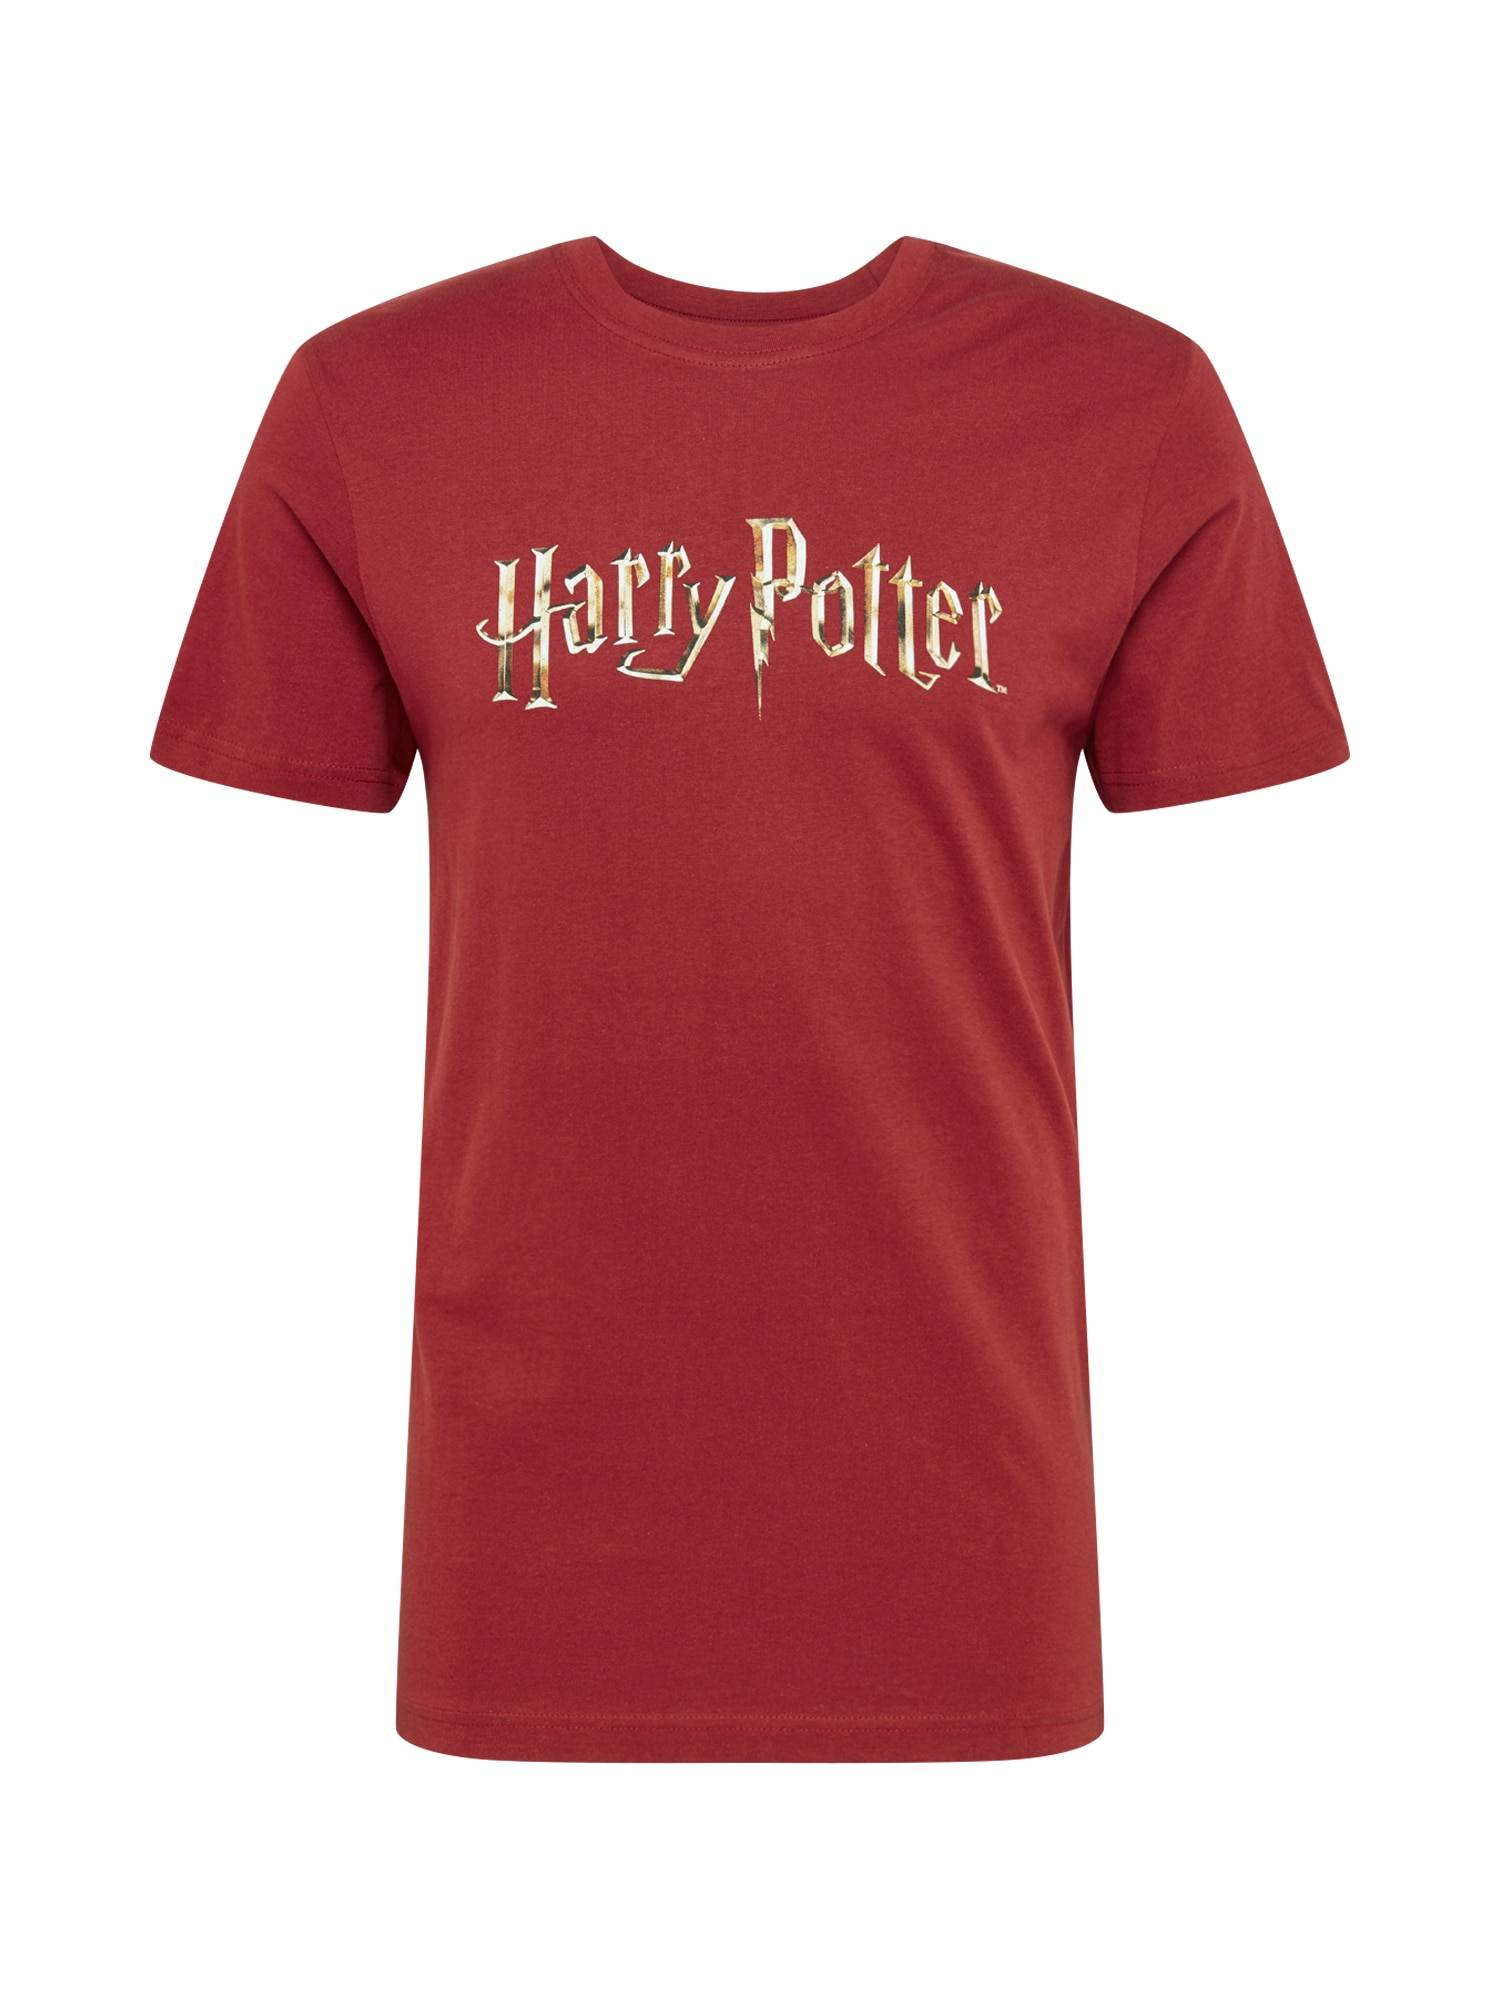 Tee T-Shirt 'Harry Potter'  - Rouge - Taille: S - male